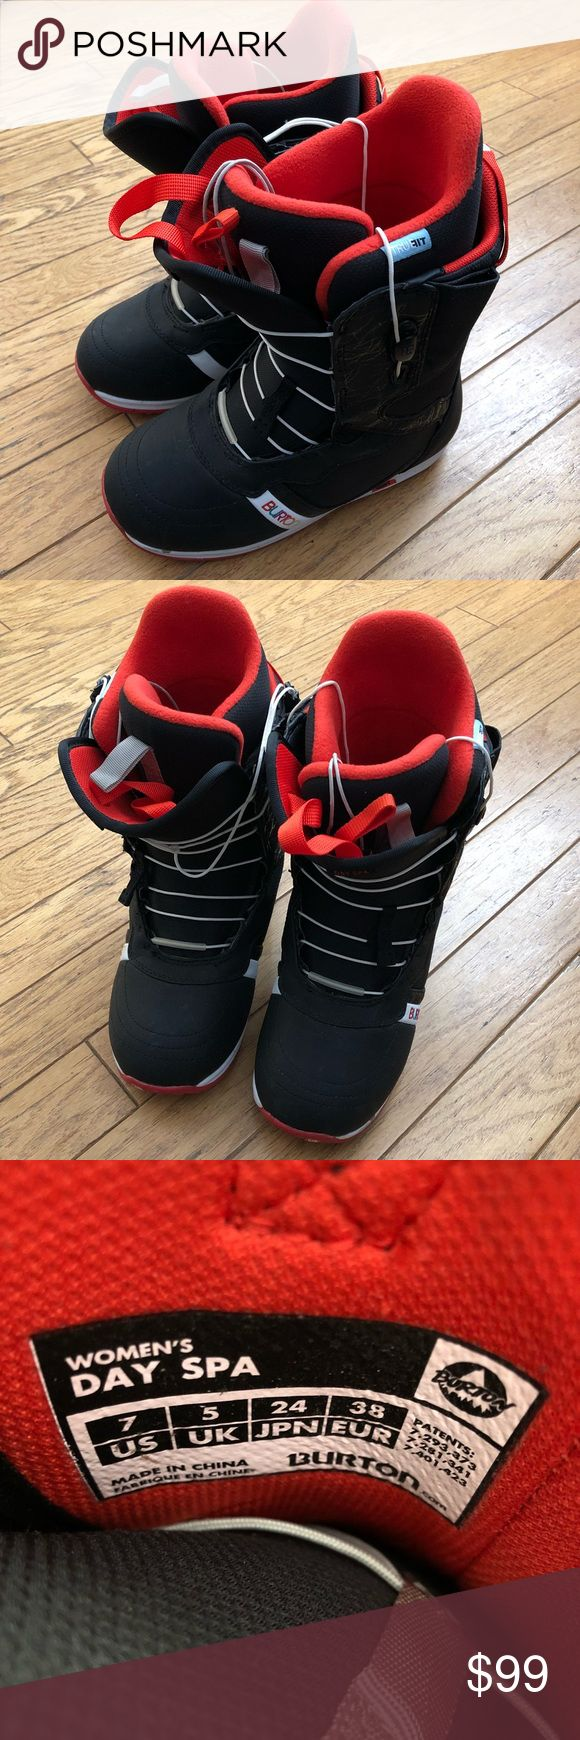 """Burton Women's Snowboarding Boots Black & Red Burton """"Spa Day"""" Style - Women's Size 7 US Excellent condition, only used twice so they're basically like new. Super comfortable and supportive boots that keep you warm and dry on the slopes. Great for any snow day.   All bundles discounted by 20% or more! Offers welcome on any of my items 🌸  Tags: ski snow snowboards snowboarding snowboots burtons sports active outdoor winter Burton Shoes Winter & Rain Boots"""